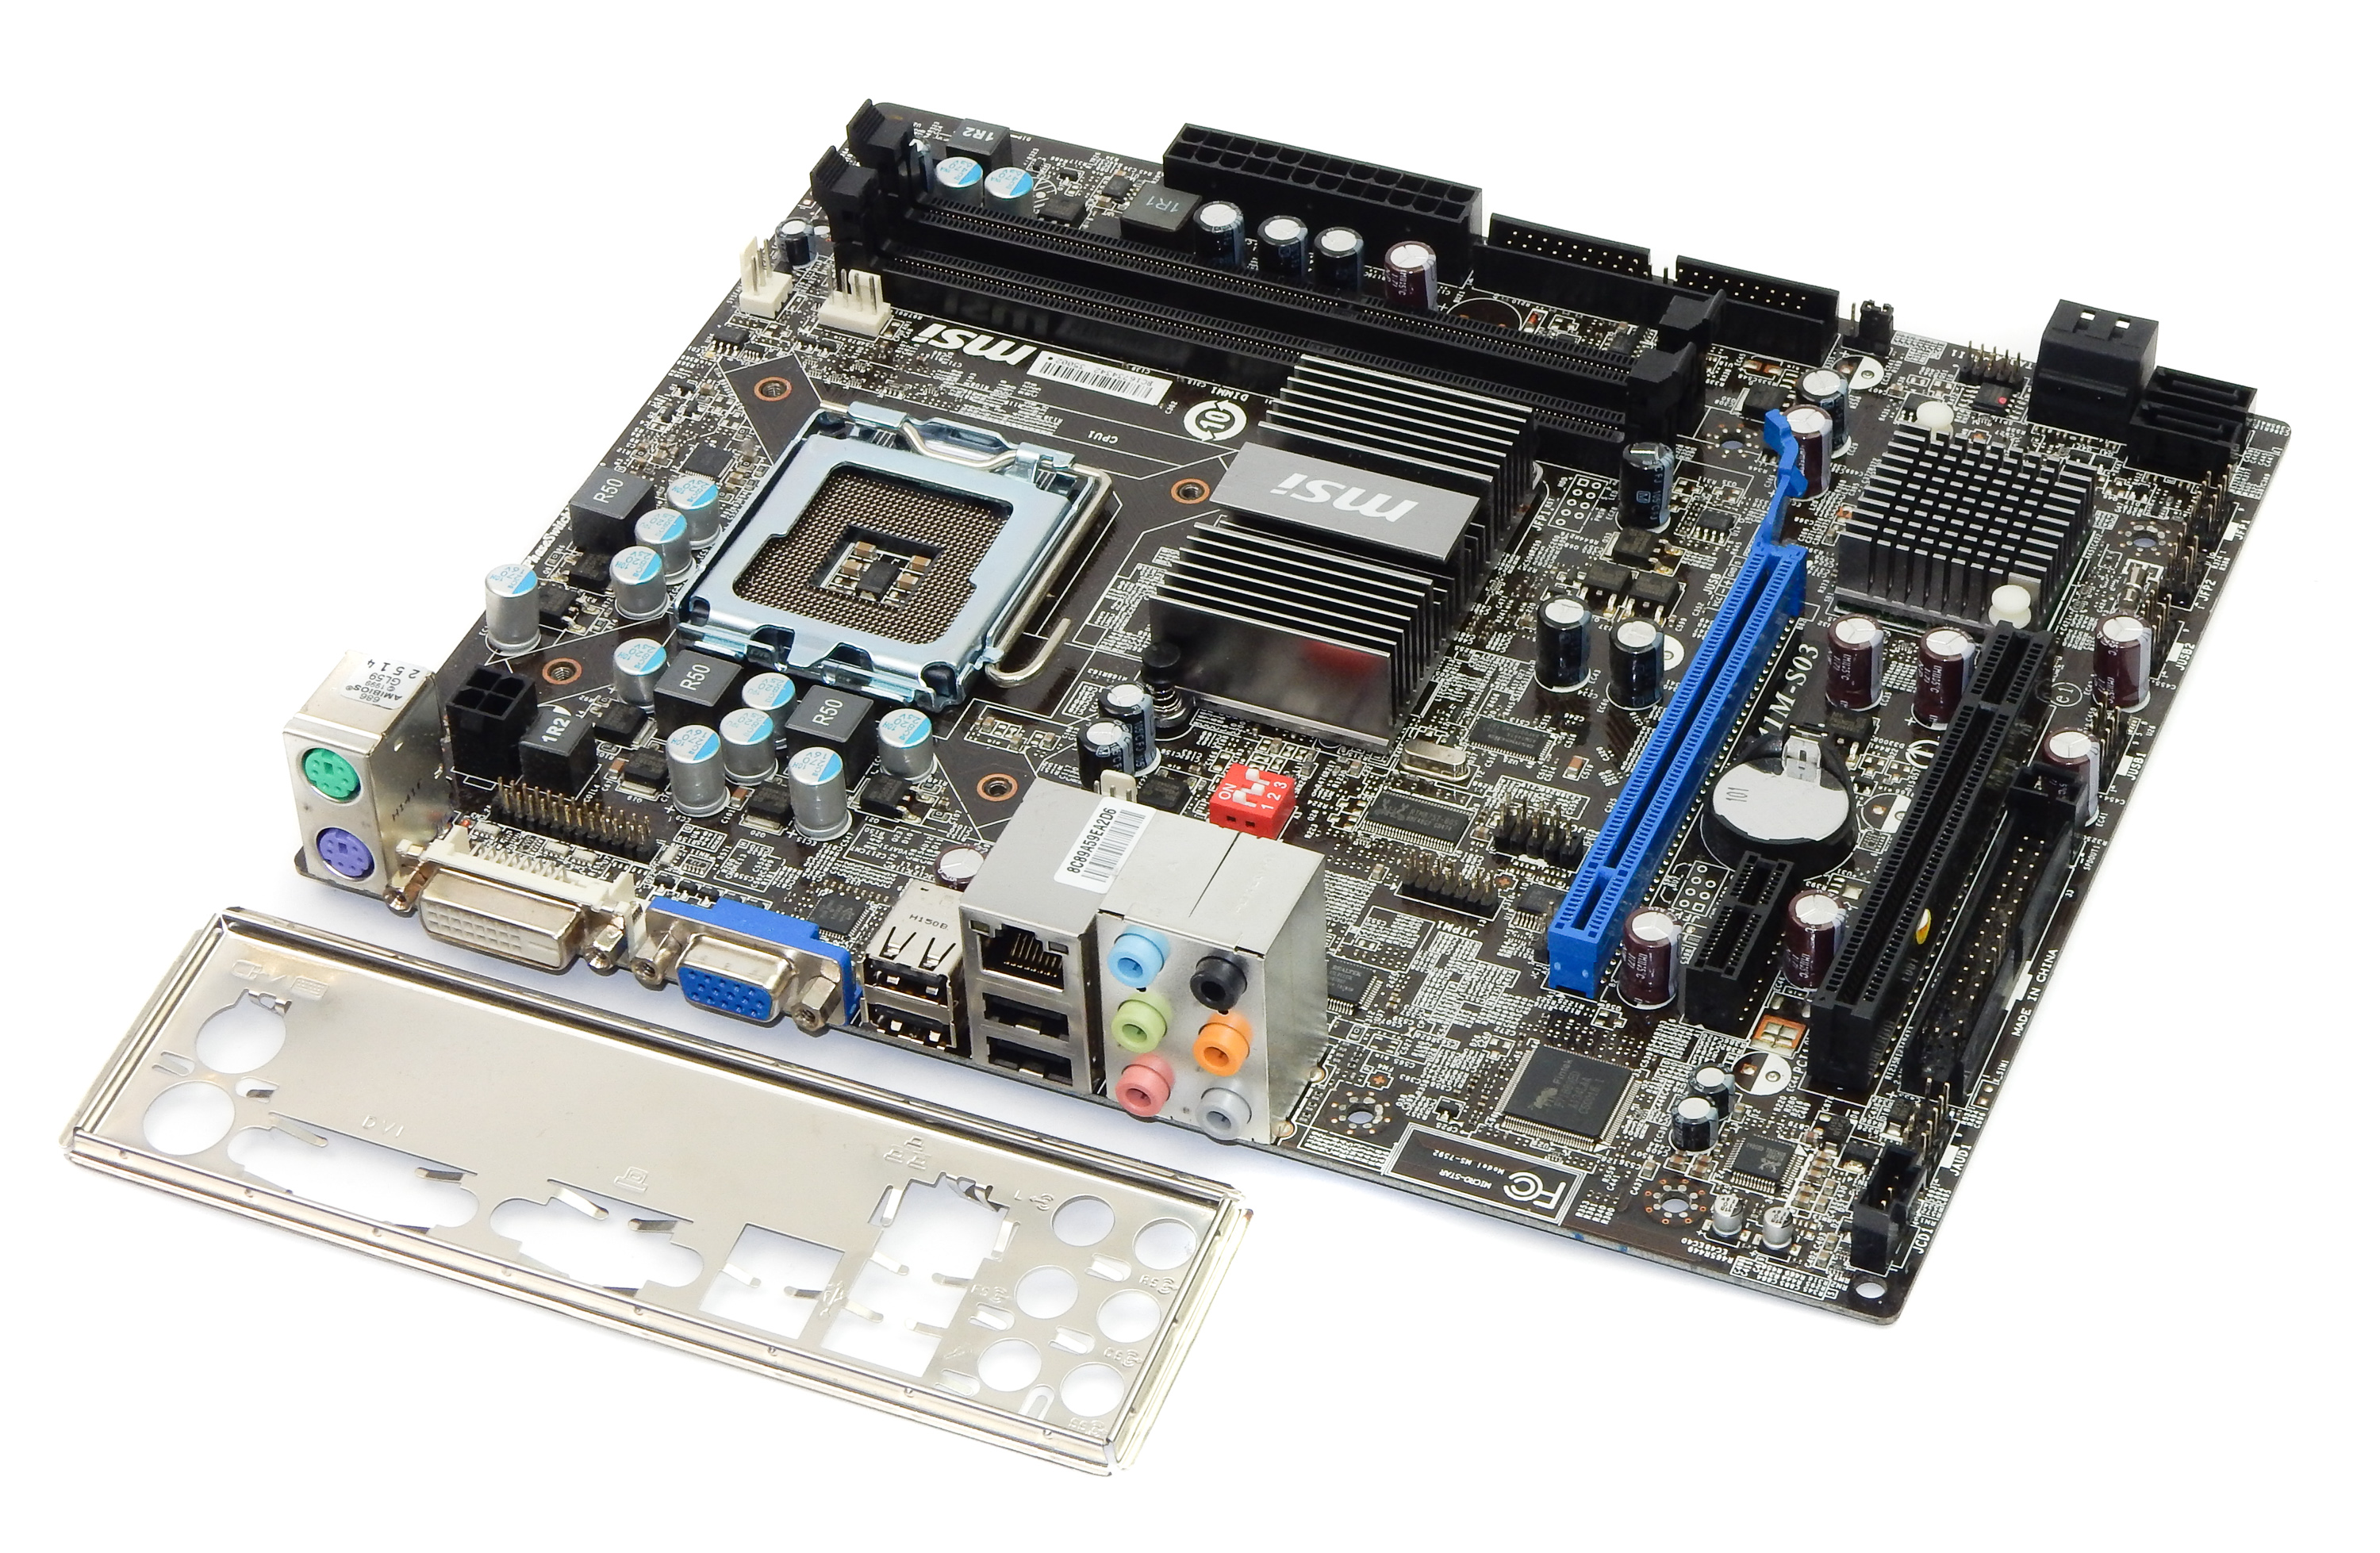 MSI G41M-S03 Socket Type LGA775 uATX Motherboard - MS-7592 Ver:6.0